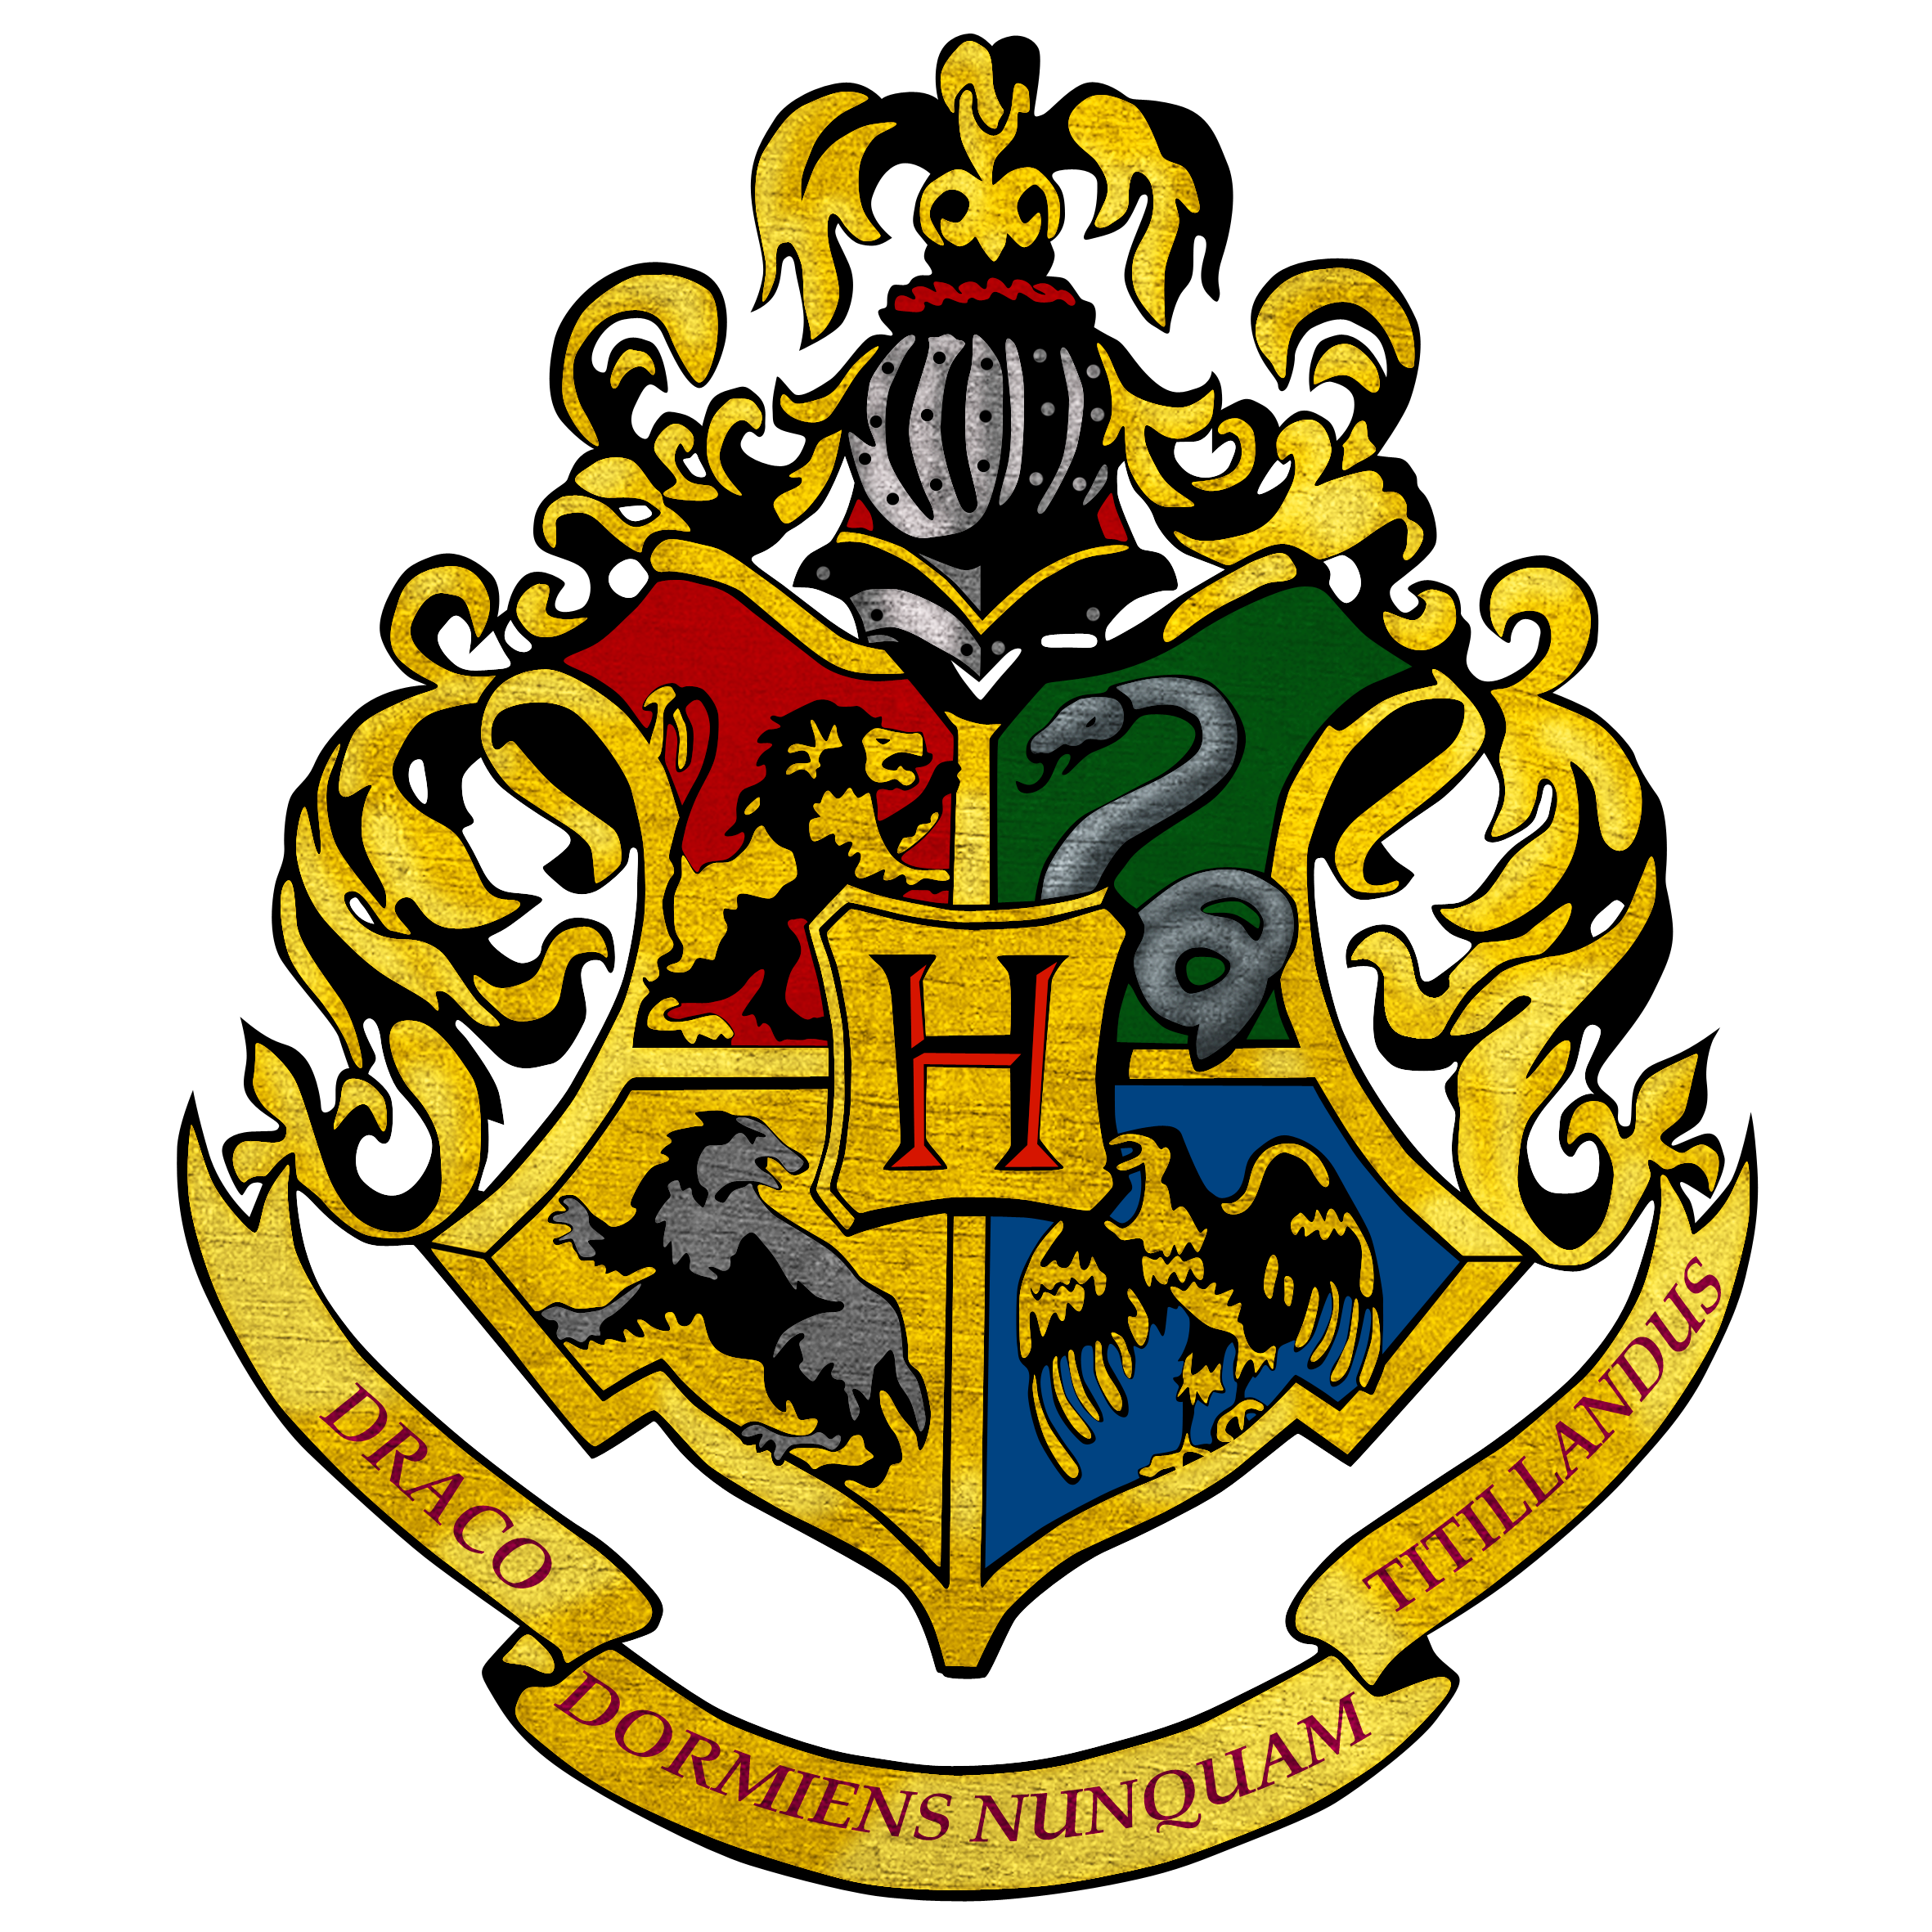 Flying car harry potter clipart clipart free TAG : Harry Potter | Pinterest | Hogwarts, Hermione granger and ... clipart free